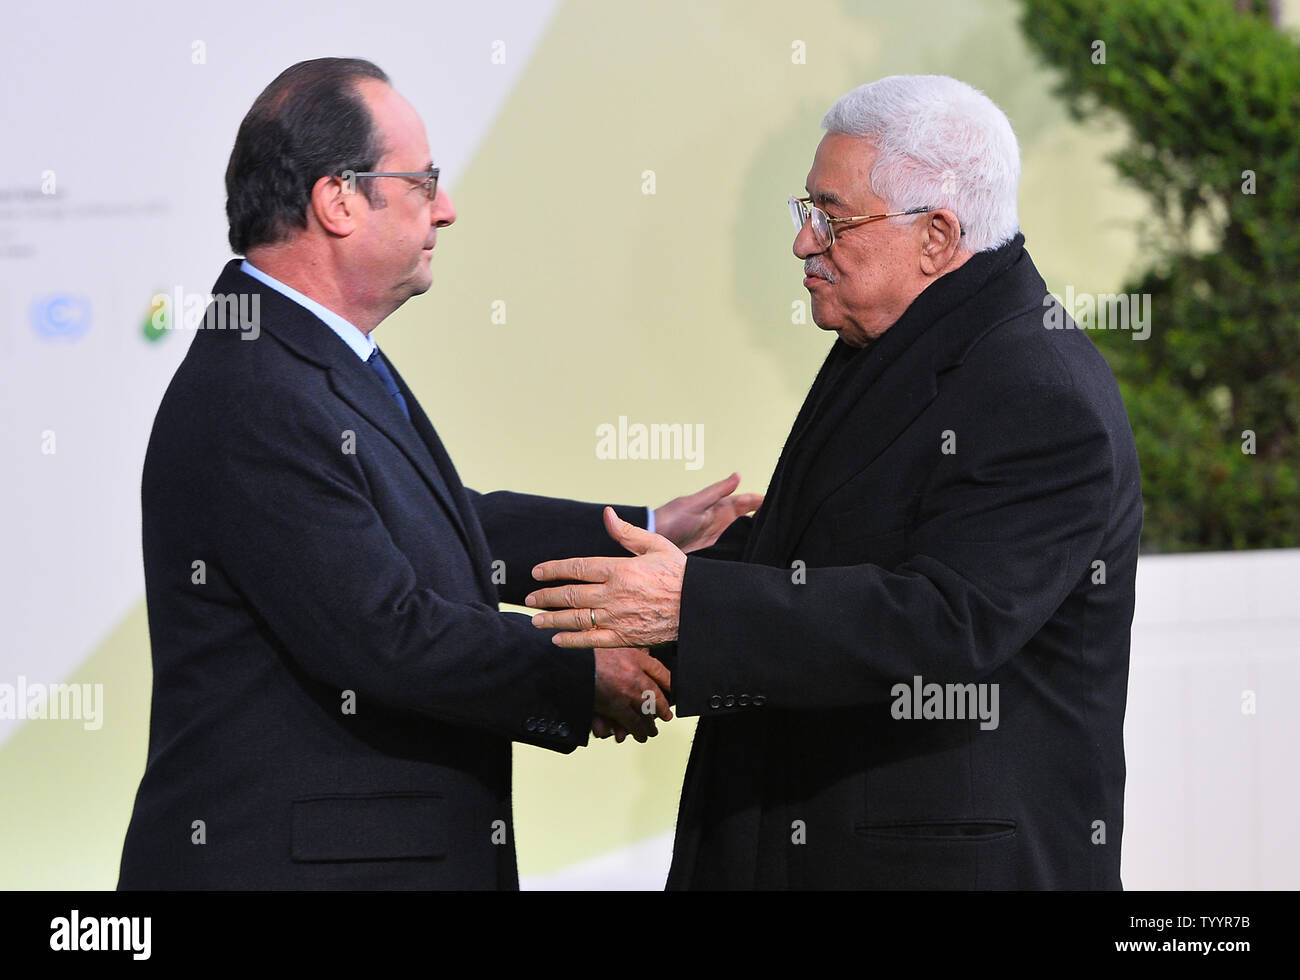 Palestinian President Mahmoud Abbas (R) is greeted by French President Francois Hollande at the United Nation's 21st climate change conference at Le Bourget near Paris on November 30, 2015. The almost 150 heads of state and representatives from 200 countries in attendance will attempt to negotiate a legally binding agreement to limit worldwide carbon emissions with the goal of keeping global warming under 2 degrees Celsius.   Photo by David Silpa/UPI - Stock Image